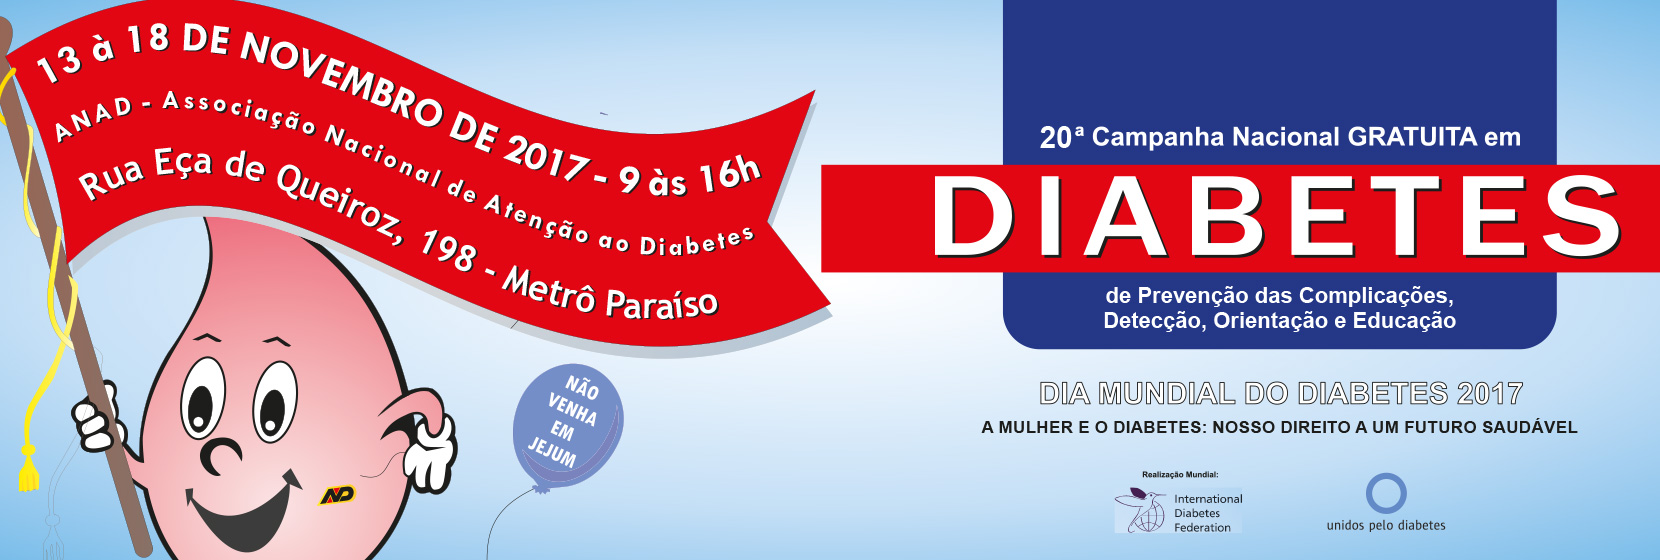 Dia-Mundial-do-Diabetes